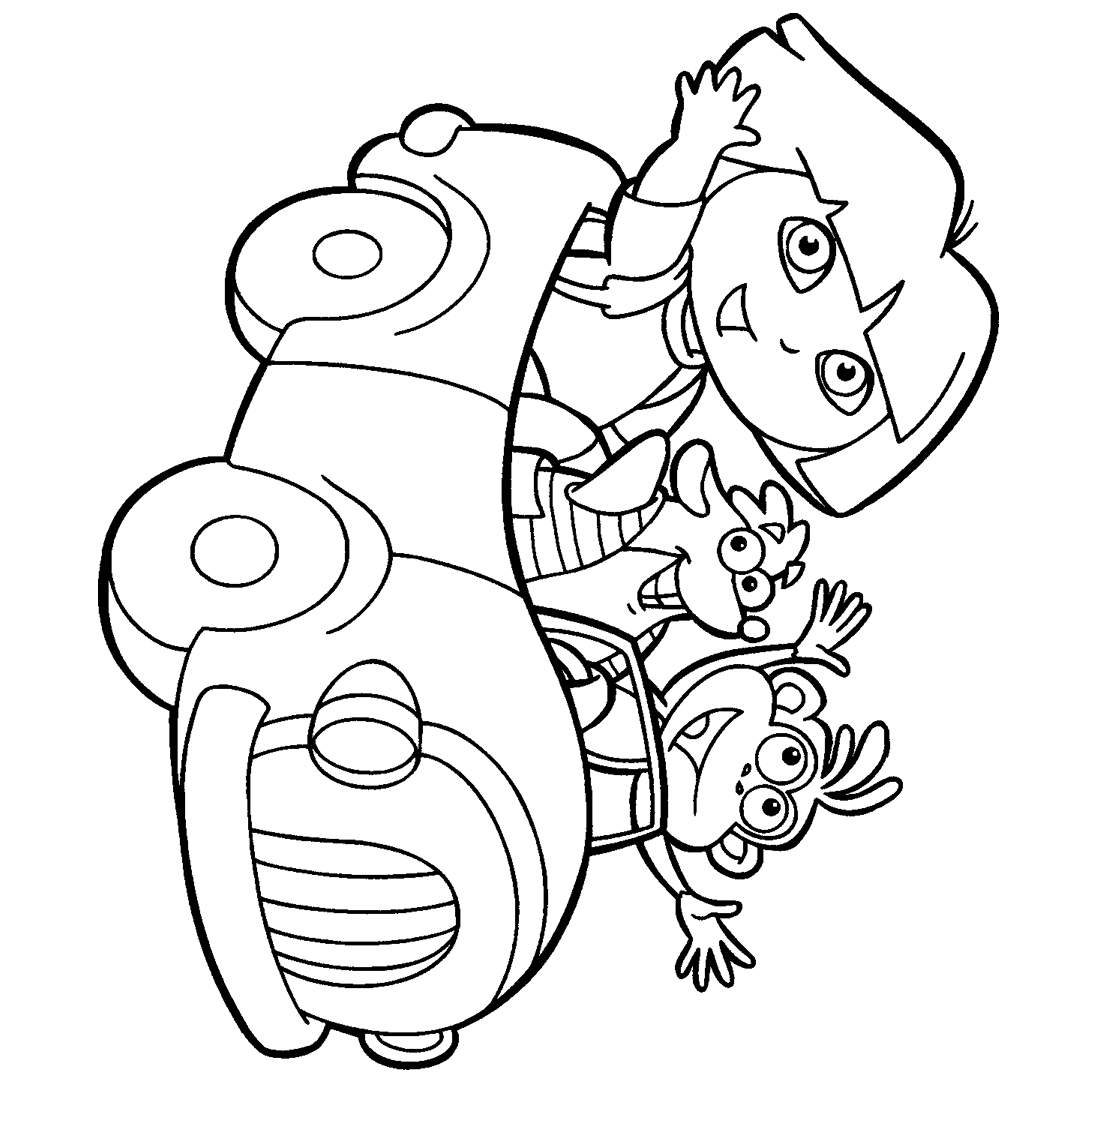 dora pictures to color and print dora coloring pages for kids printable free dora color and print to pictures